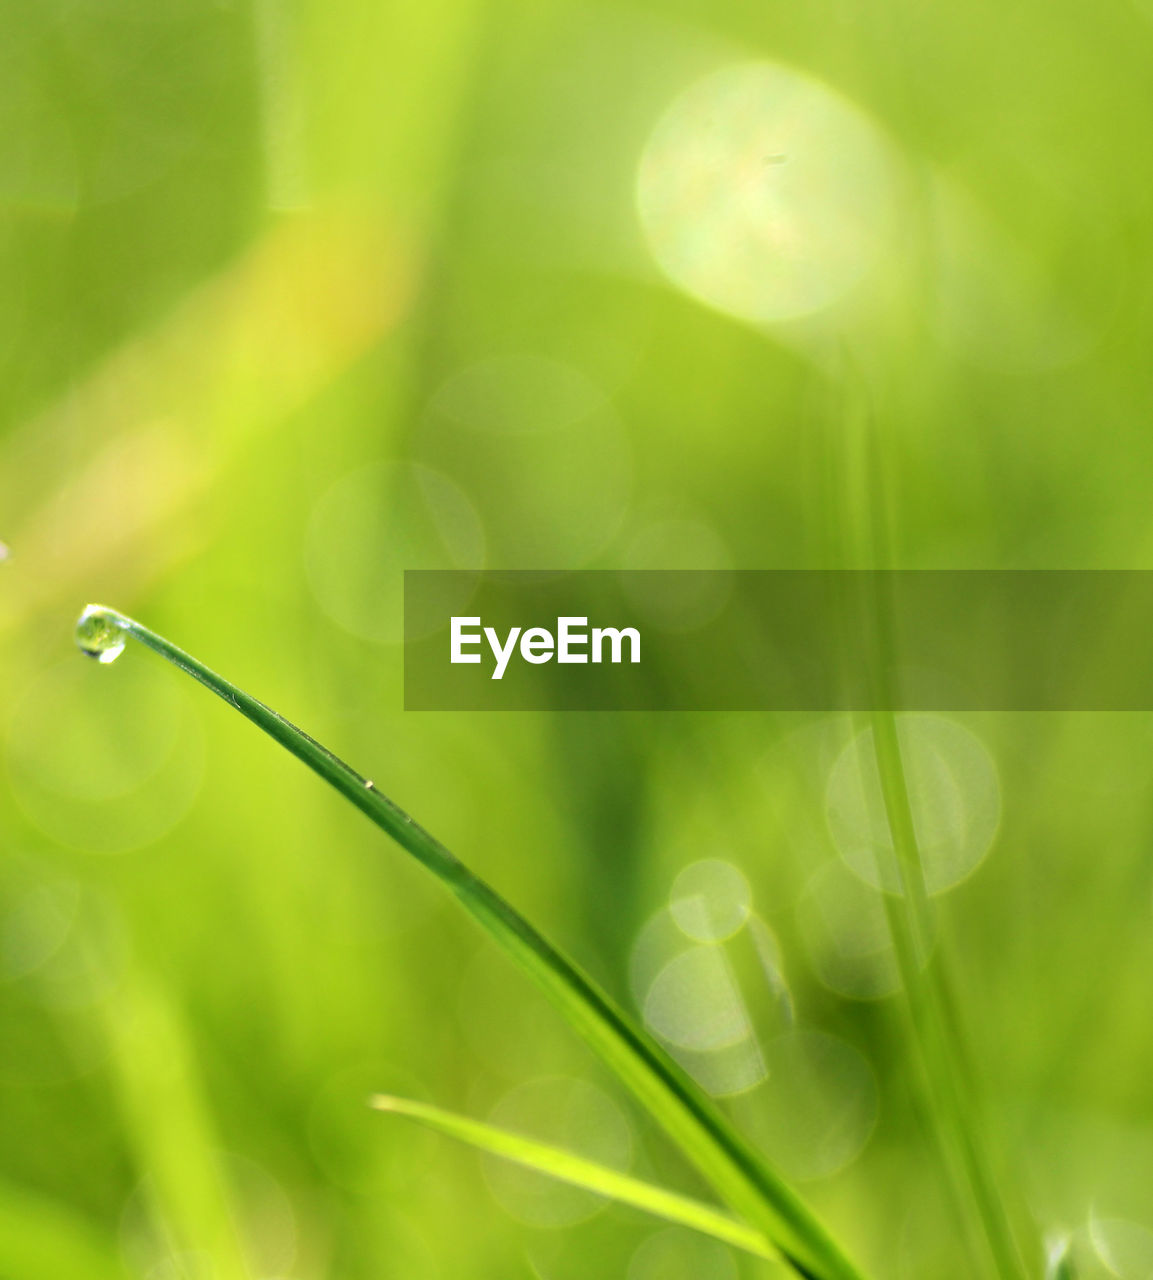 green color, plant, growth, nature, selective focus, beauty in nature, close-up, no people, grass, freshness, day, water, outdoors, field, focus on foreground, tranquility, drop, land, sunlight, blade of grass, lens flare, dew